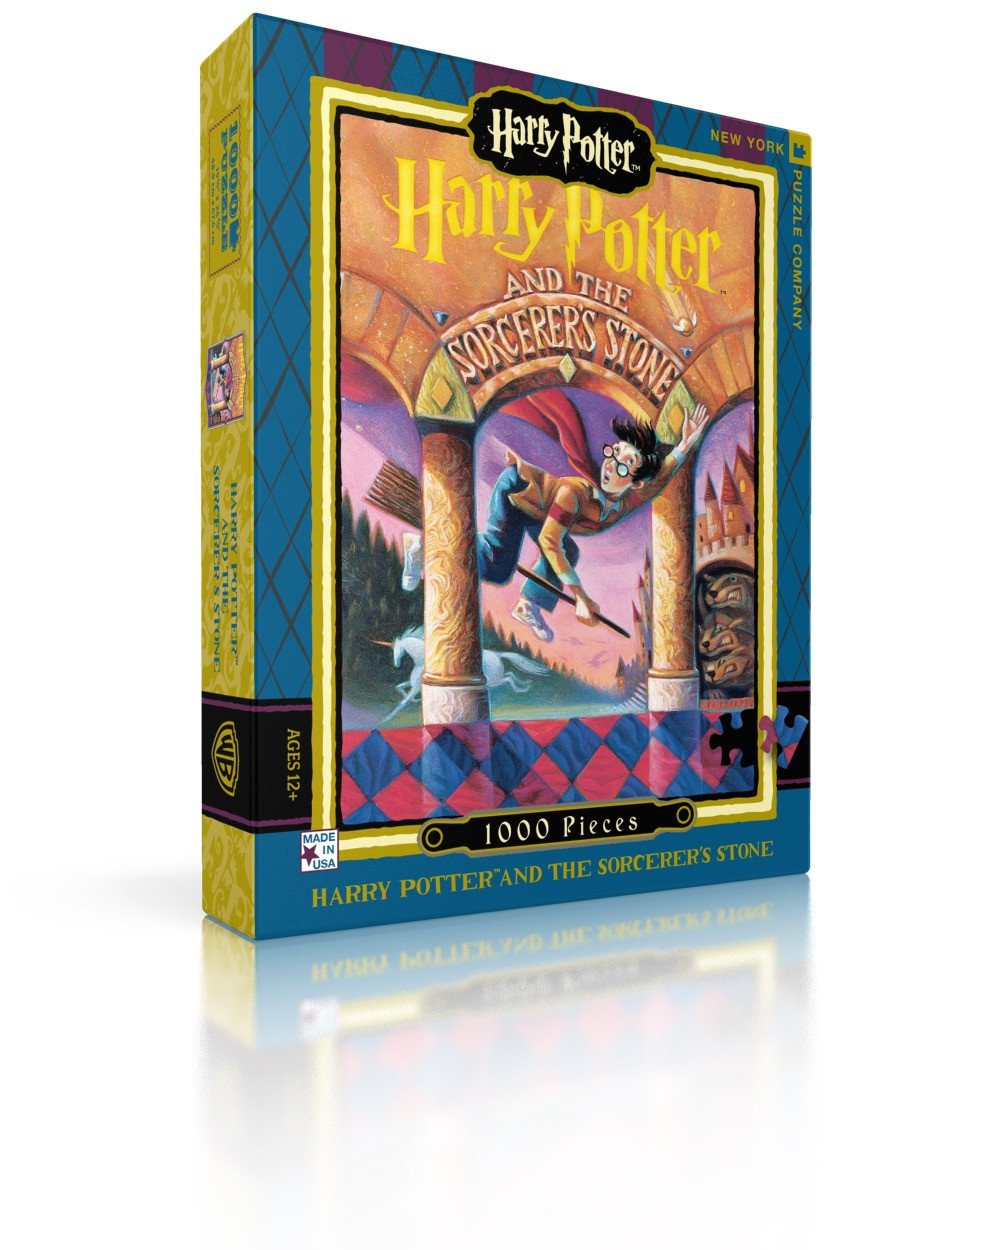 NEW! Harry Potter Puzzle- The Sorcerer's Stone